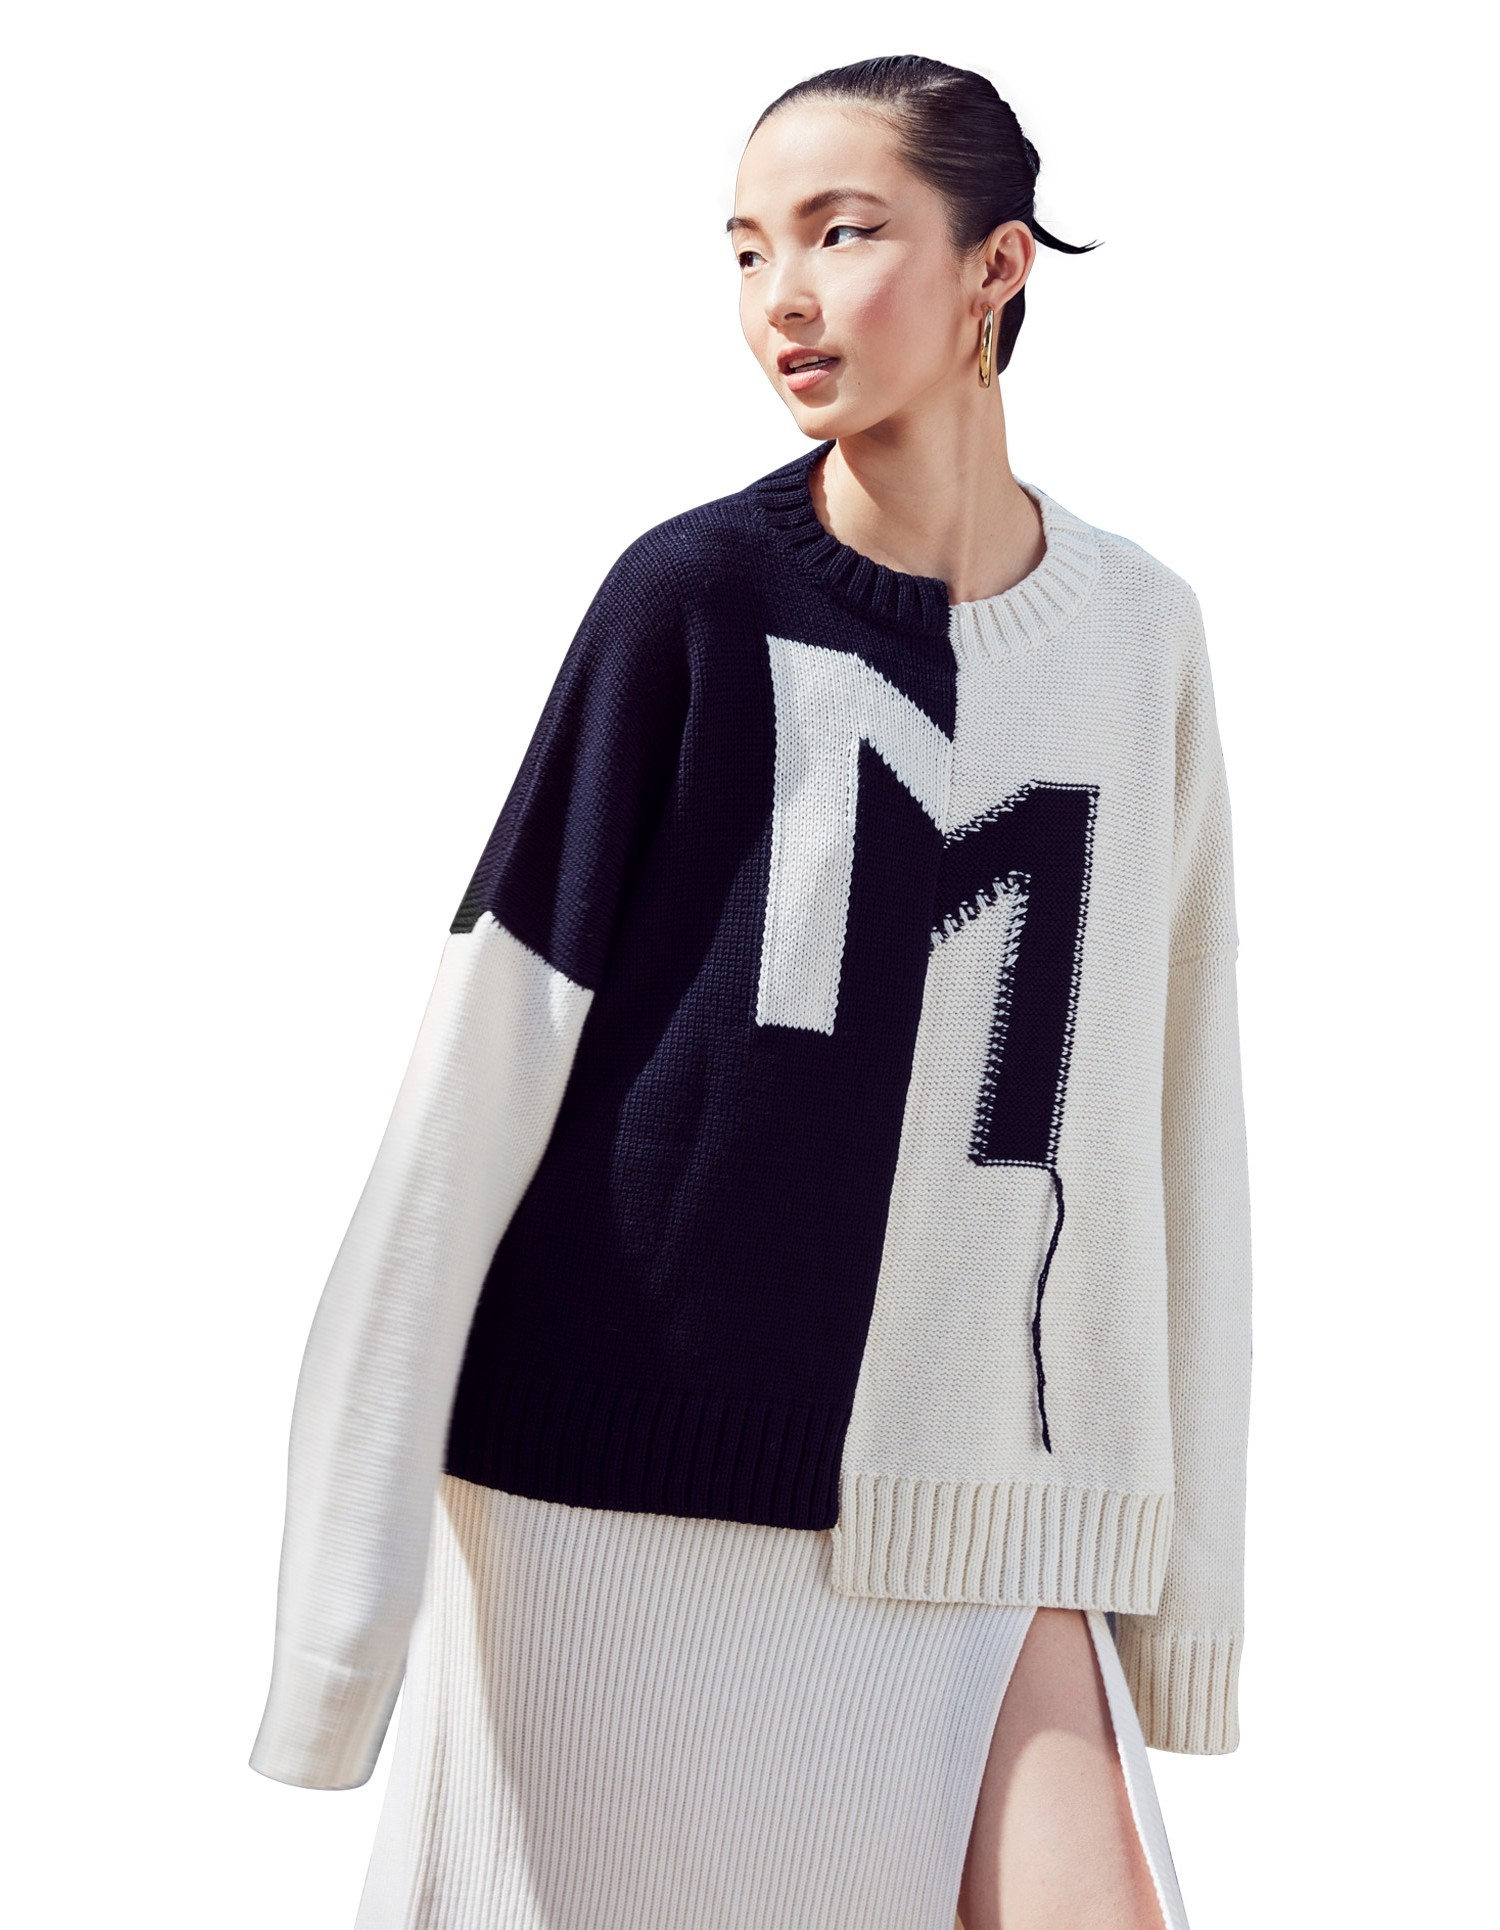 MONSE Crooked M Pullover Sweater in Ivory and Midnight on Model Front Detail View